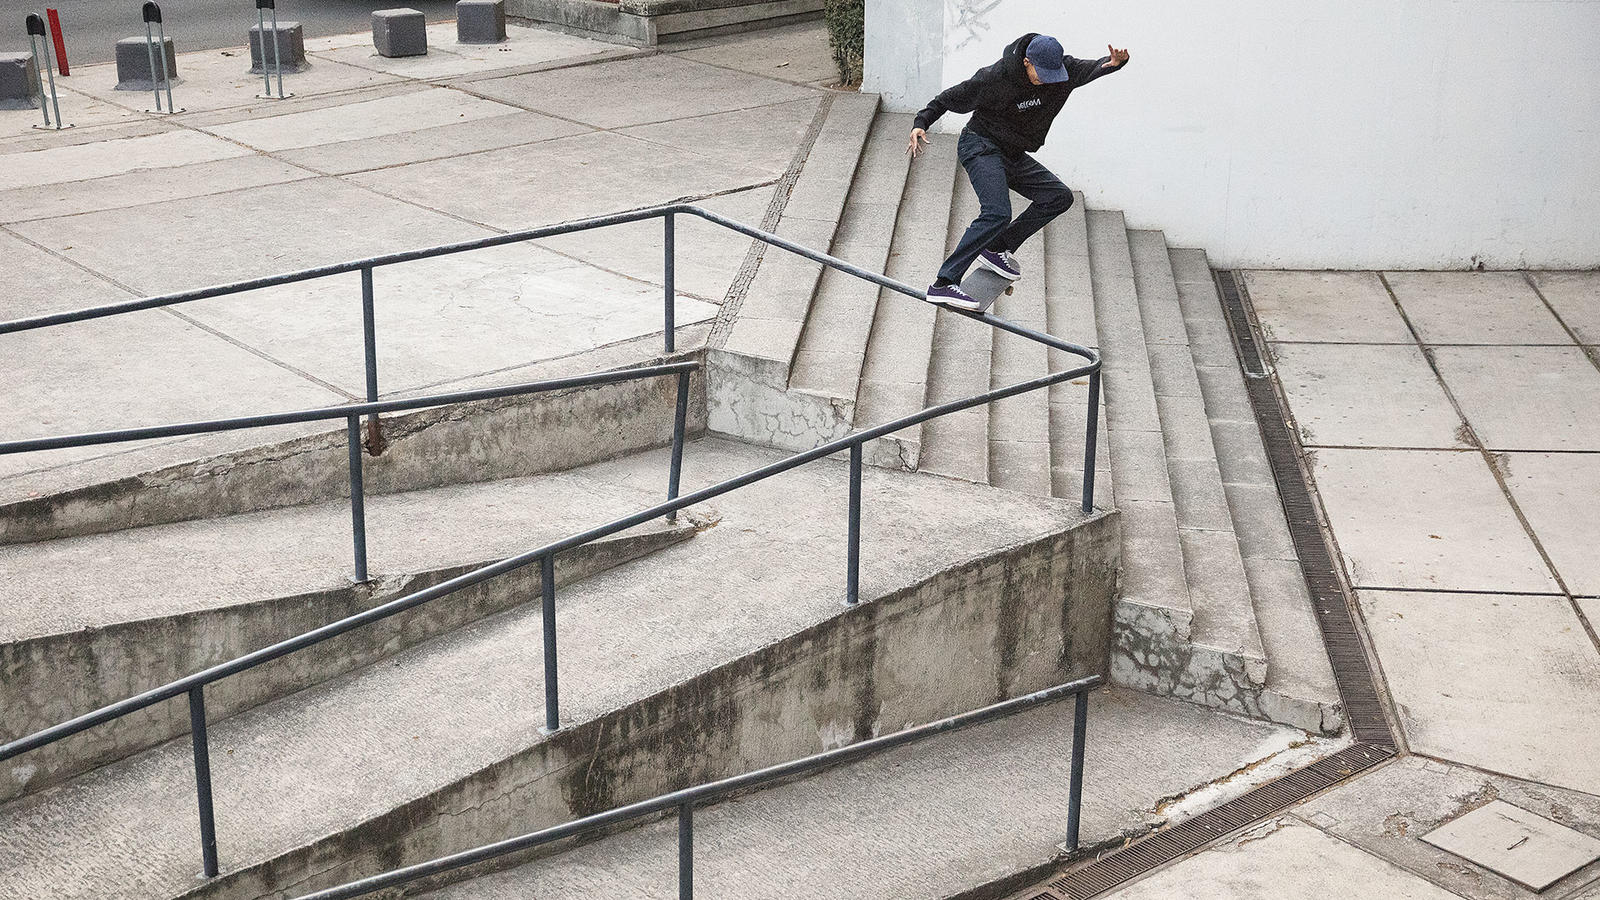 The Full-Length Skate Film Is Not Dead 8